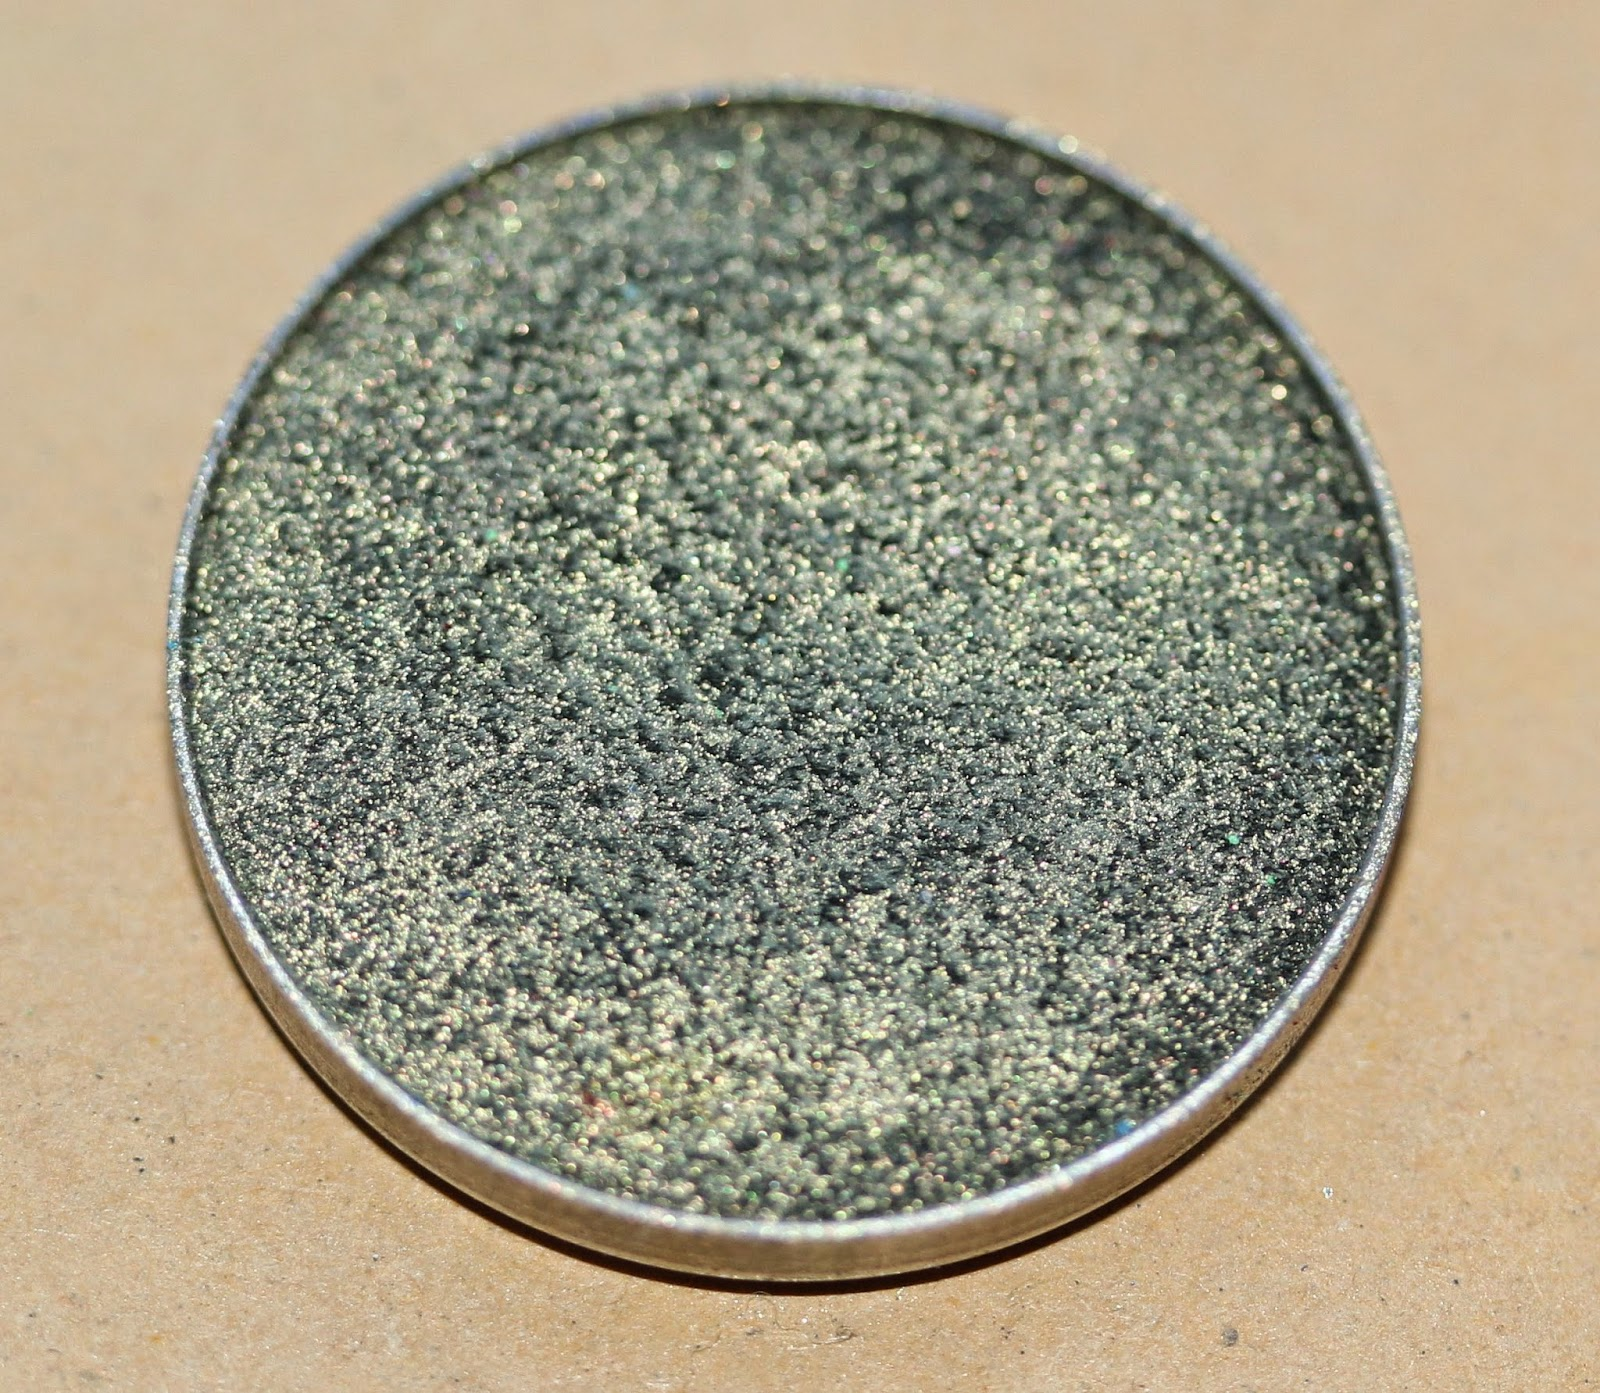 Makeup Geek Foiled eye shadow in Jester